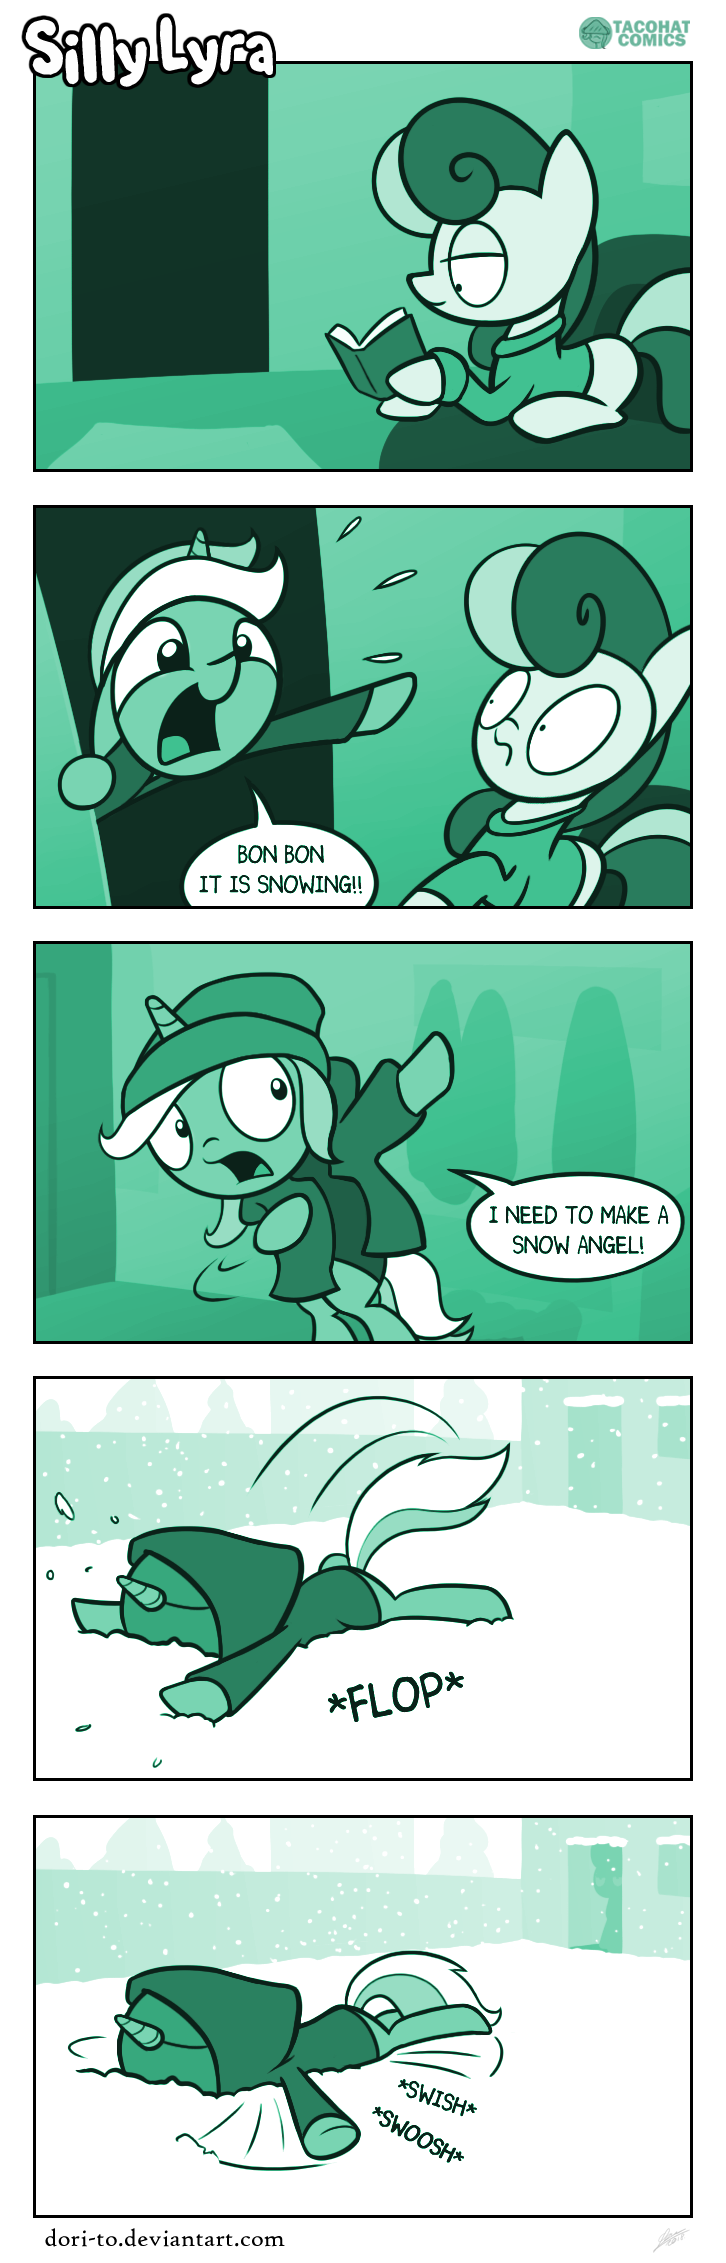 Comic strip #32 - Snow Mare